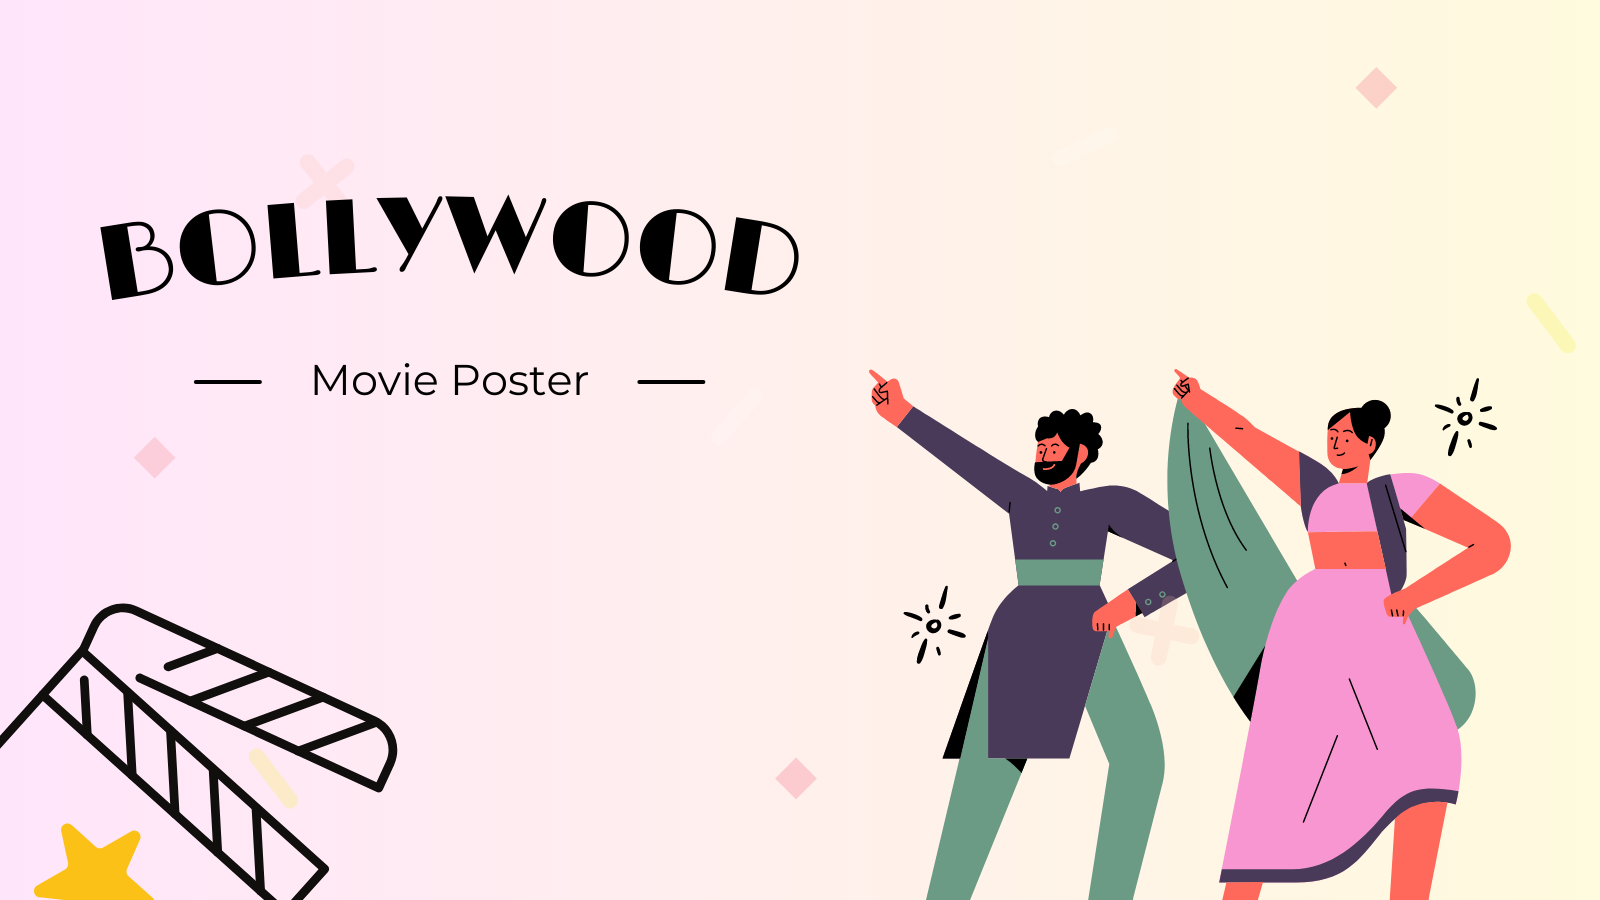 Bollywood Movie Poster - Art Challenge